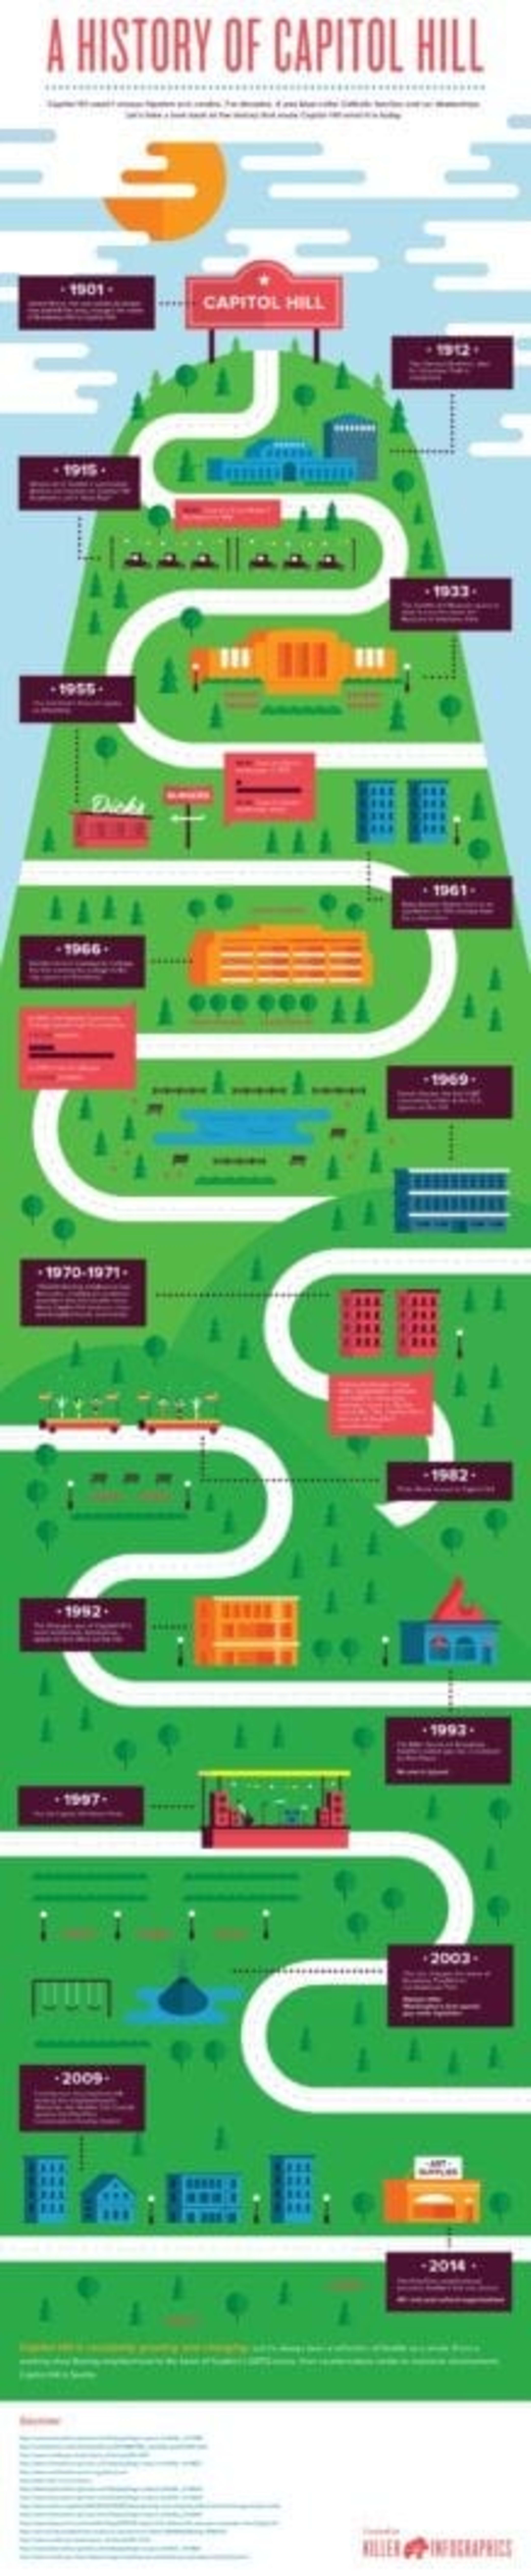 History of Capitol Hill